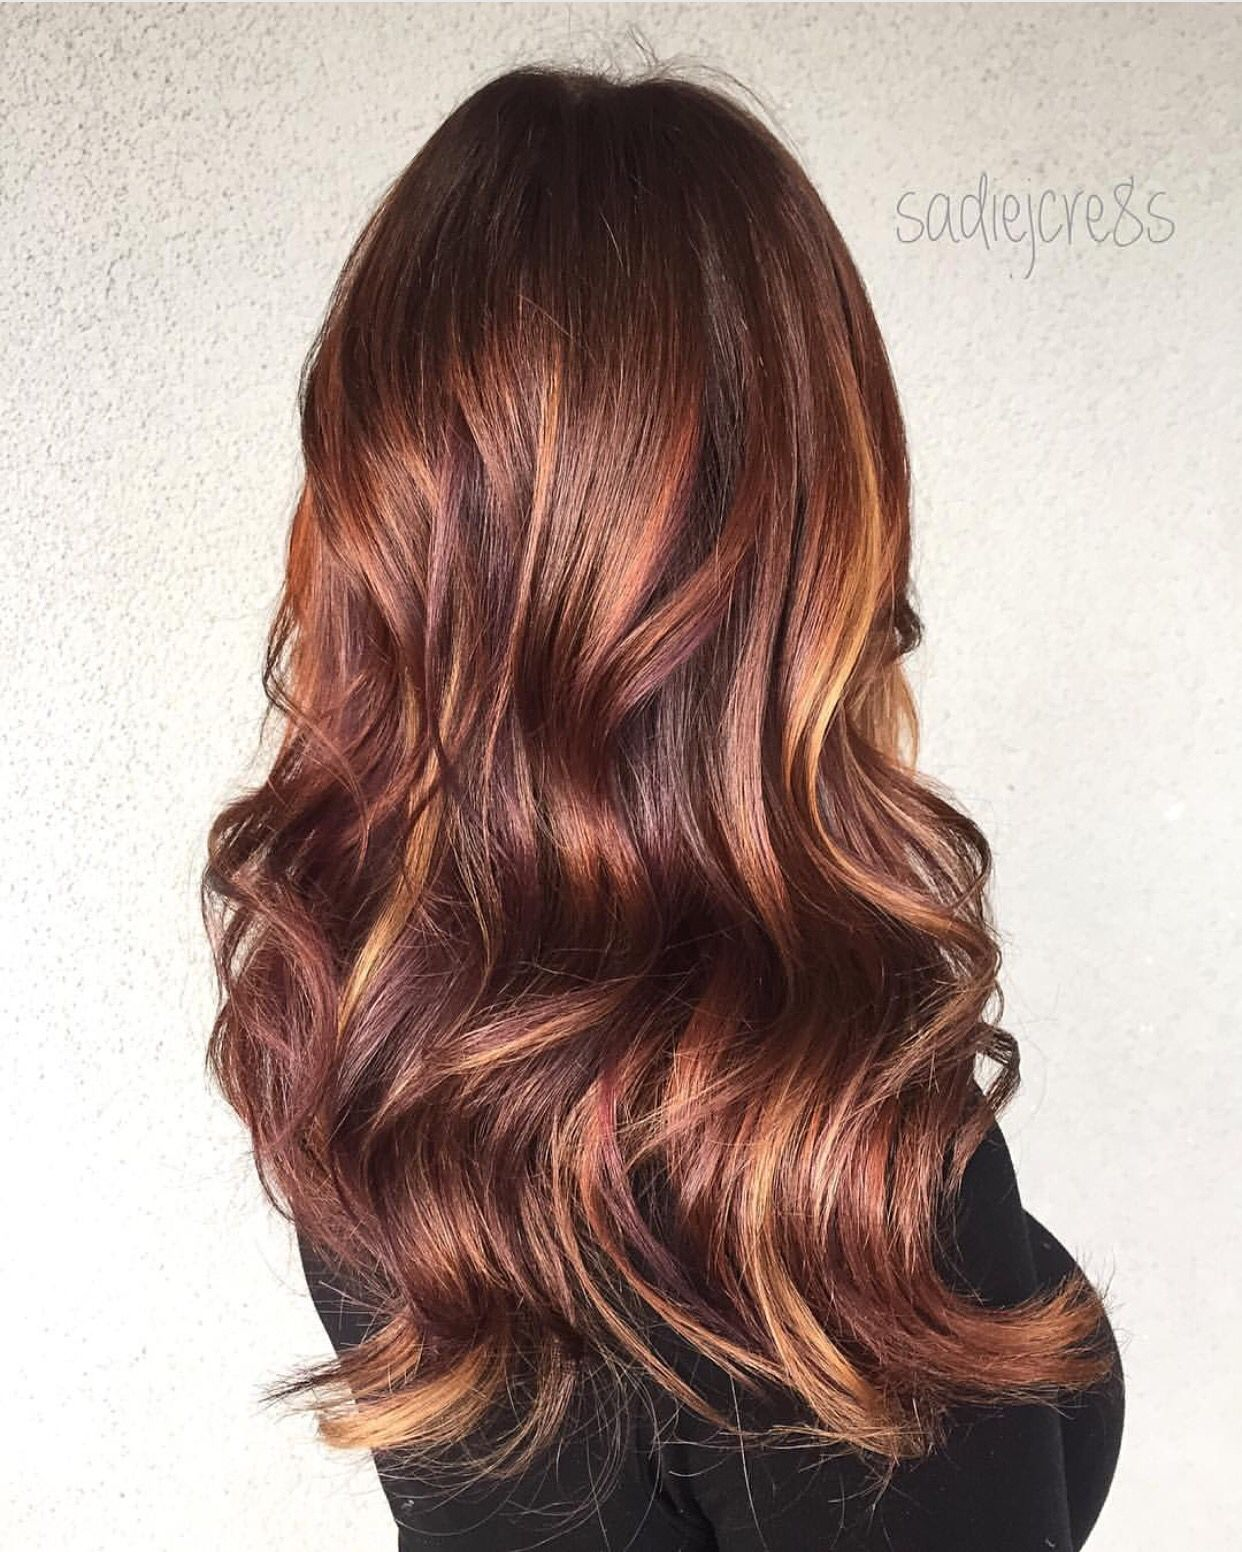 Depth And Richness Amazing Multidimensional Hair Color Design With